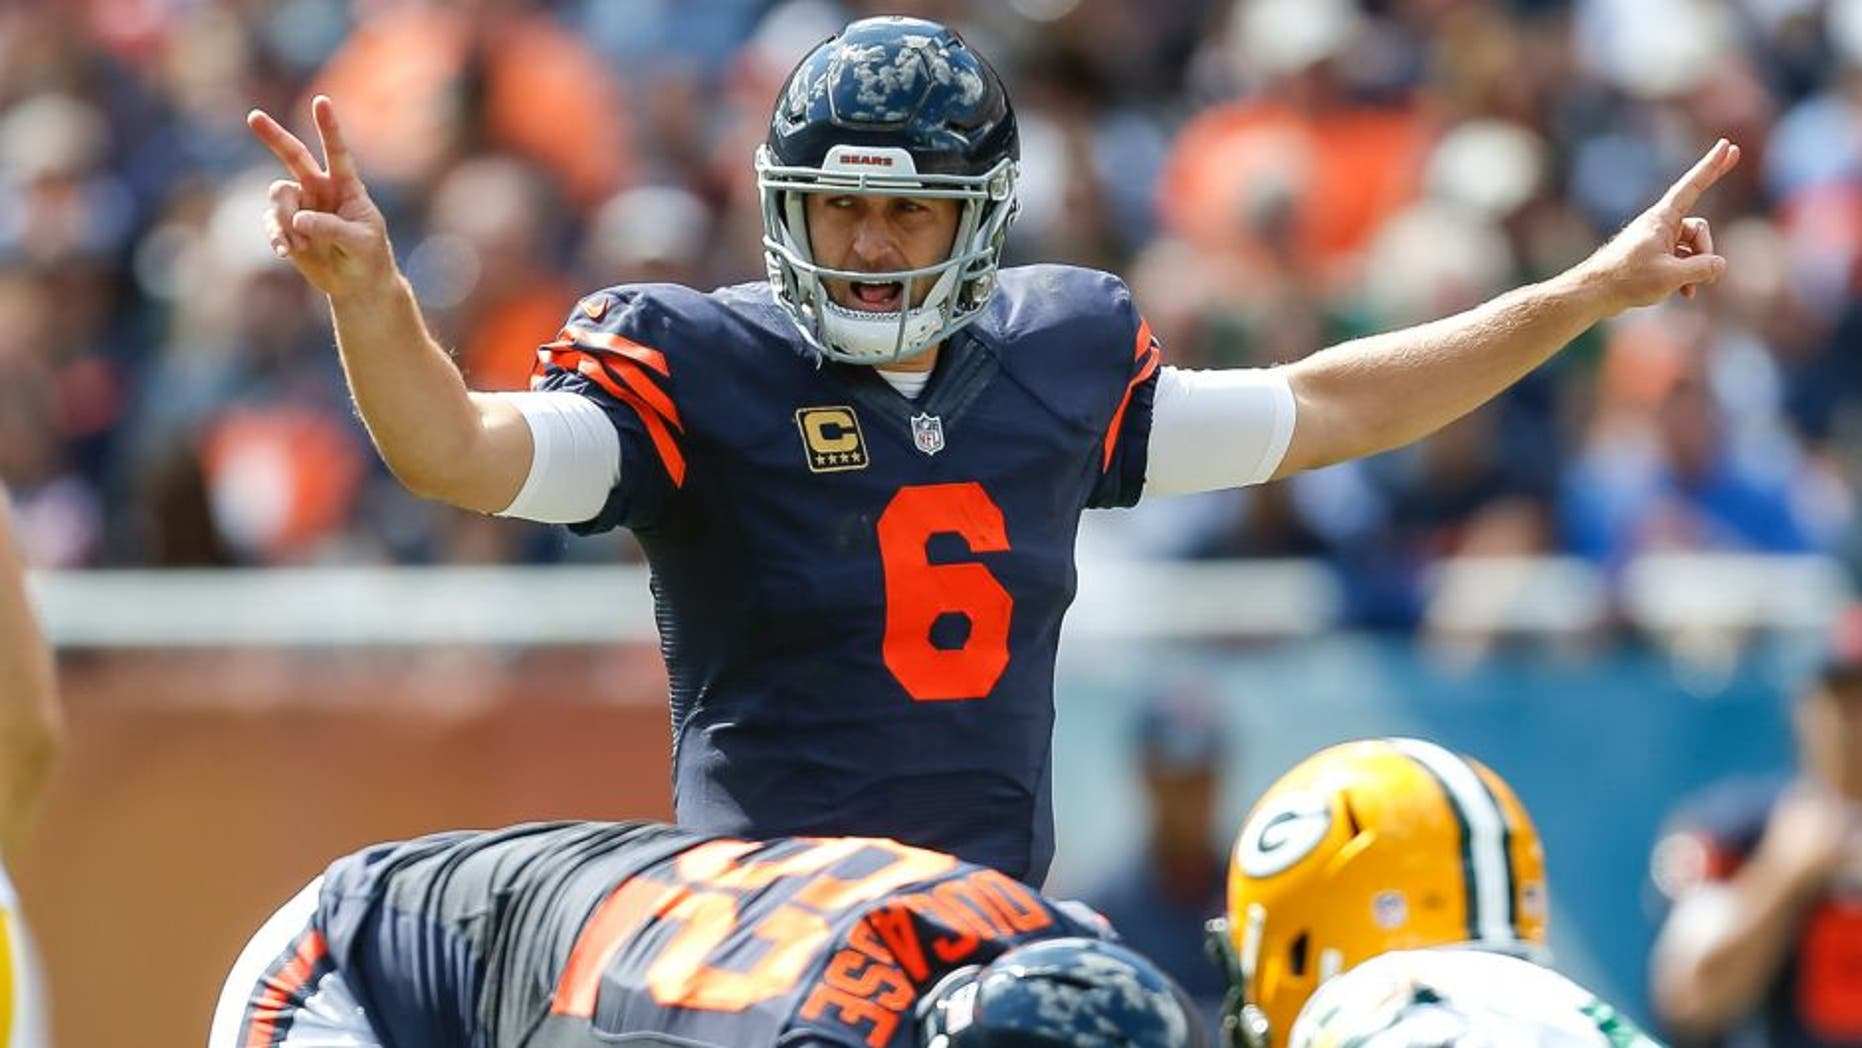 CHICAGO, IL - SEPTEMBER 13: Quarterback Jay Cutler #6 of the Chicago Bears calls a play in the first half against the Green Bay Packers at Soldier Field on September 13, 2015 in Chicago, Illinois. (Photo by Wesley Hitt/Getty Images)